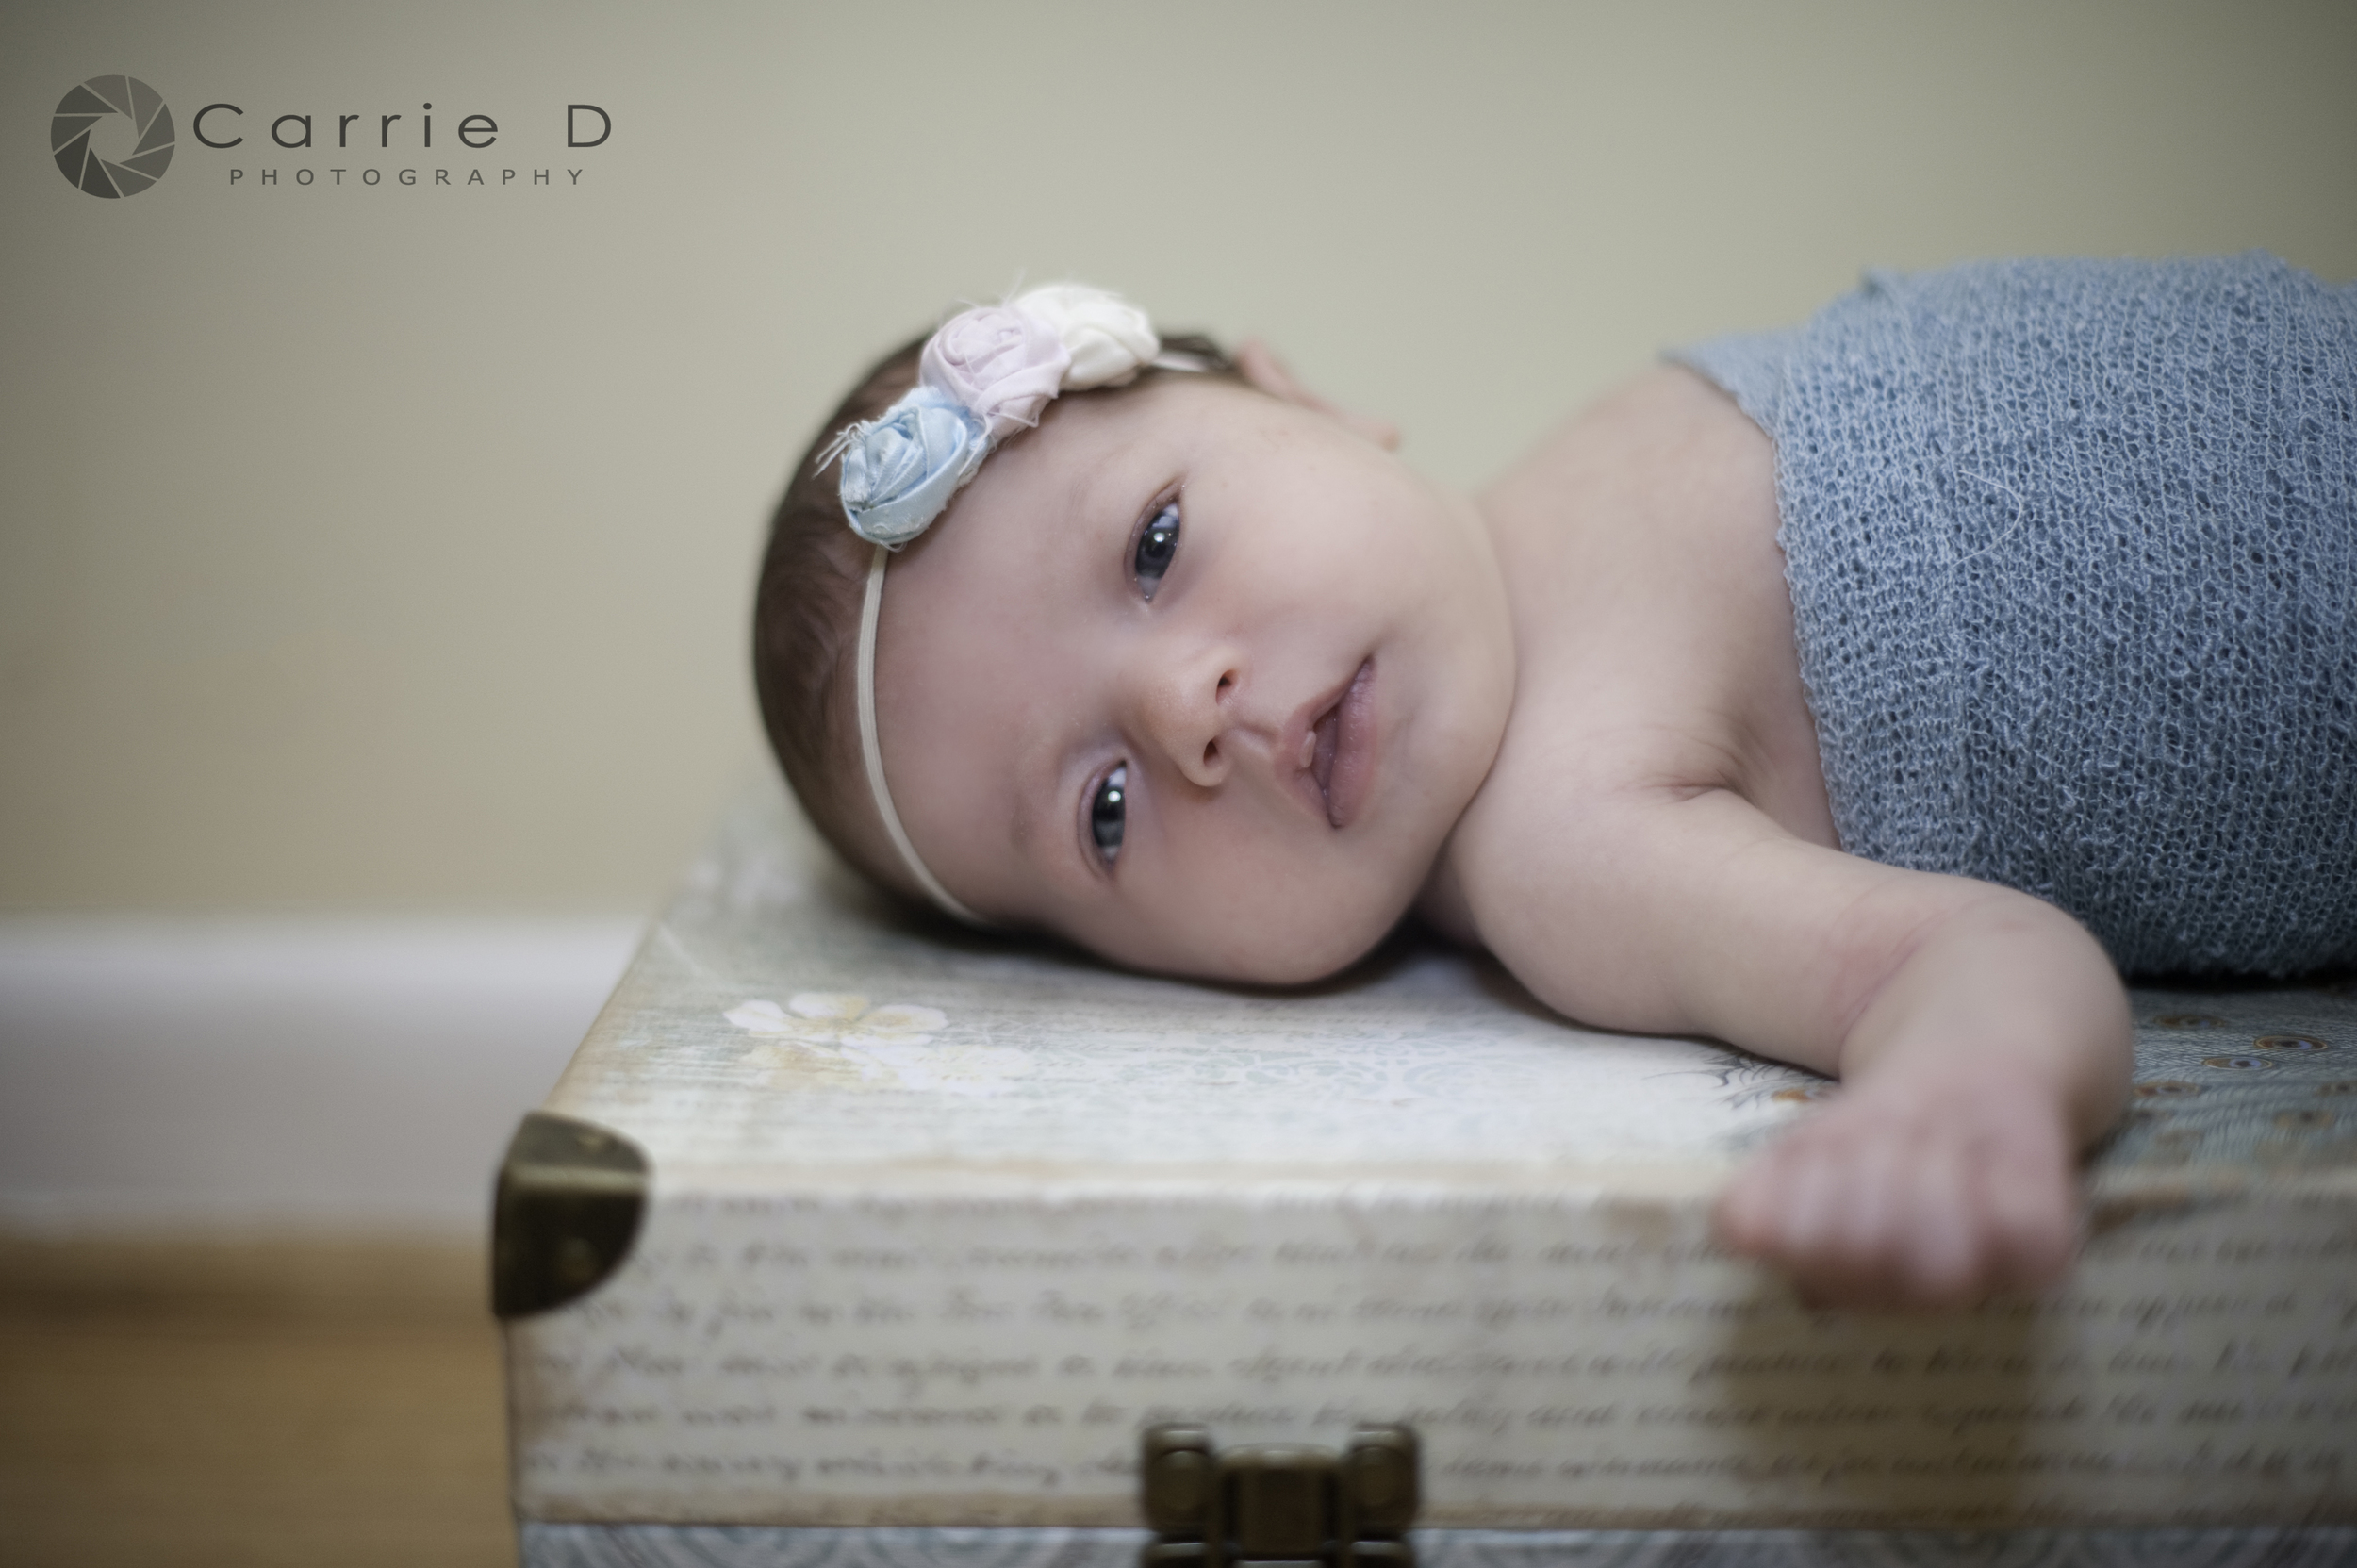 Bowie Newborn Photographer - Bowie MD Newborn Photographer - Bowie Natural Light Newborn Photographer - Bowie Natural Light Portrait Photographer - Maryland Newborn Photographer - Maryland Natural LIght Newborn Photographer - Maryland Sibling Photographer - Maryland Natural light Portrait photographer